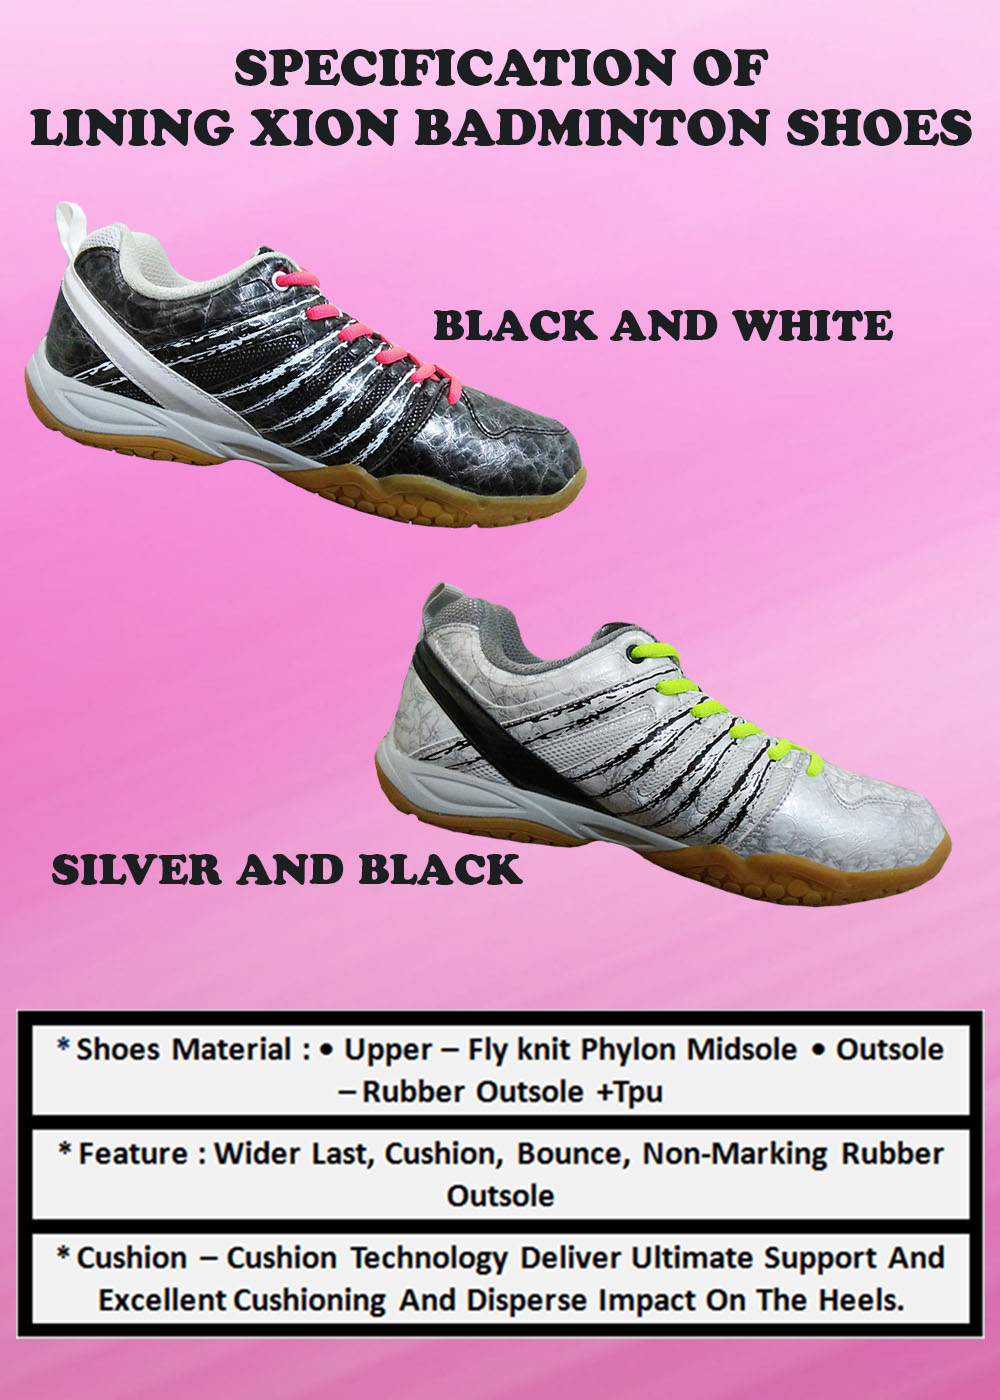 Specification of LI NING XION Badminton Shoes_4